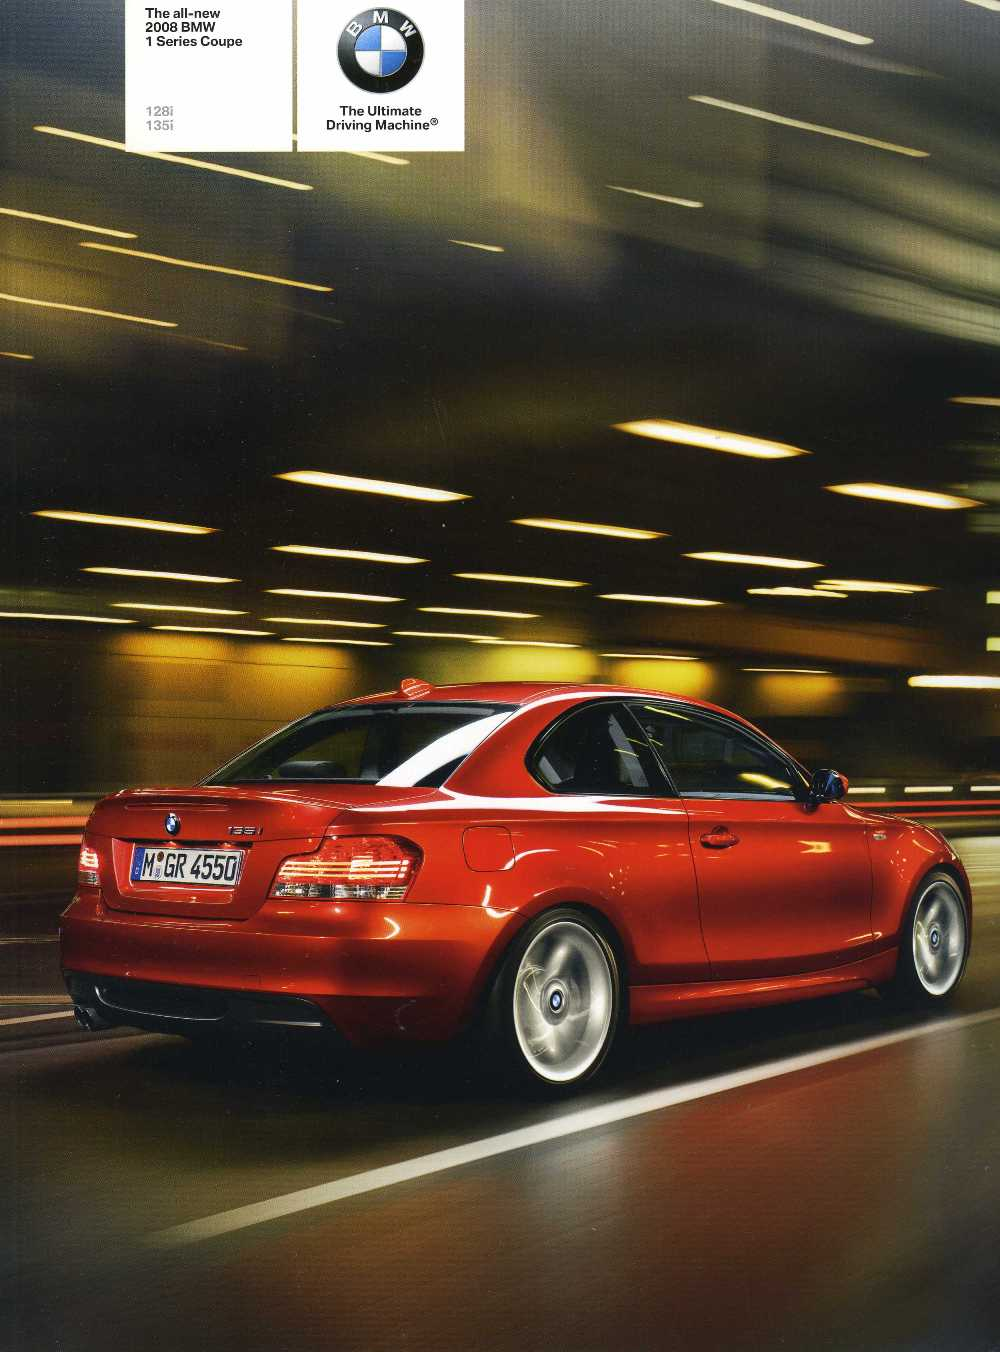 Brochure - The all-new 2008 BMW 1 Series Coupe 128i 135i - E82 (Lg)